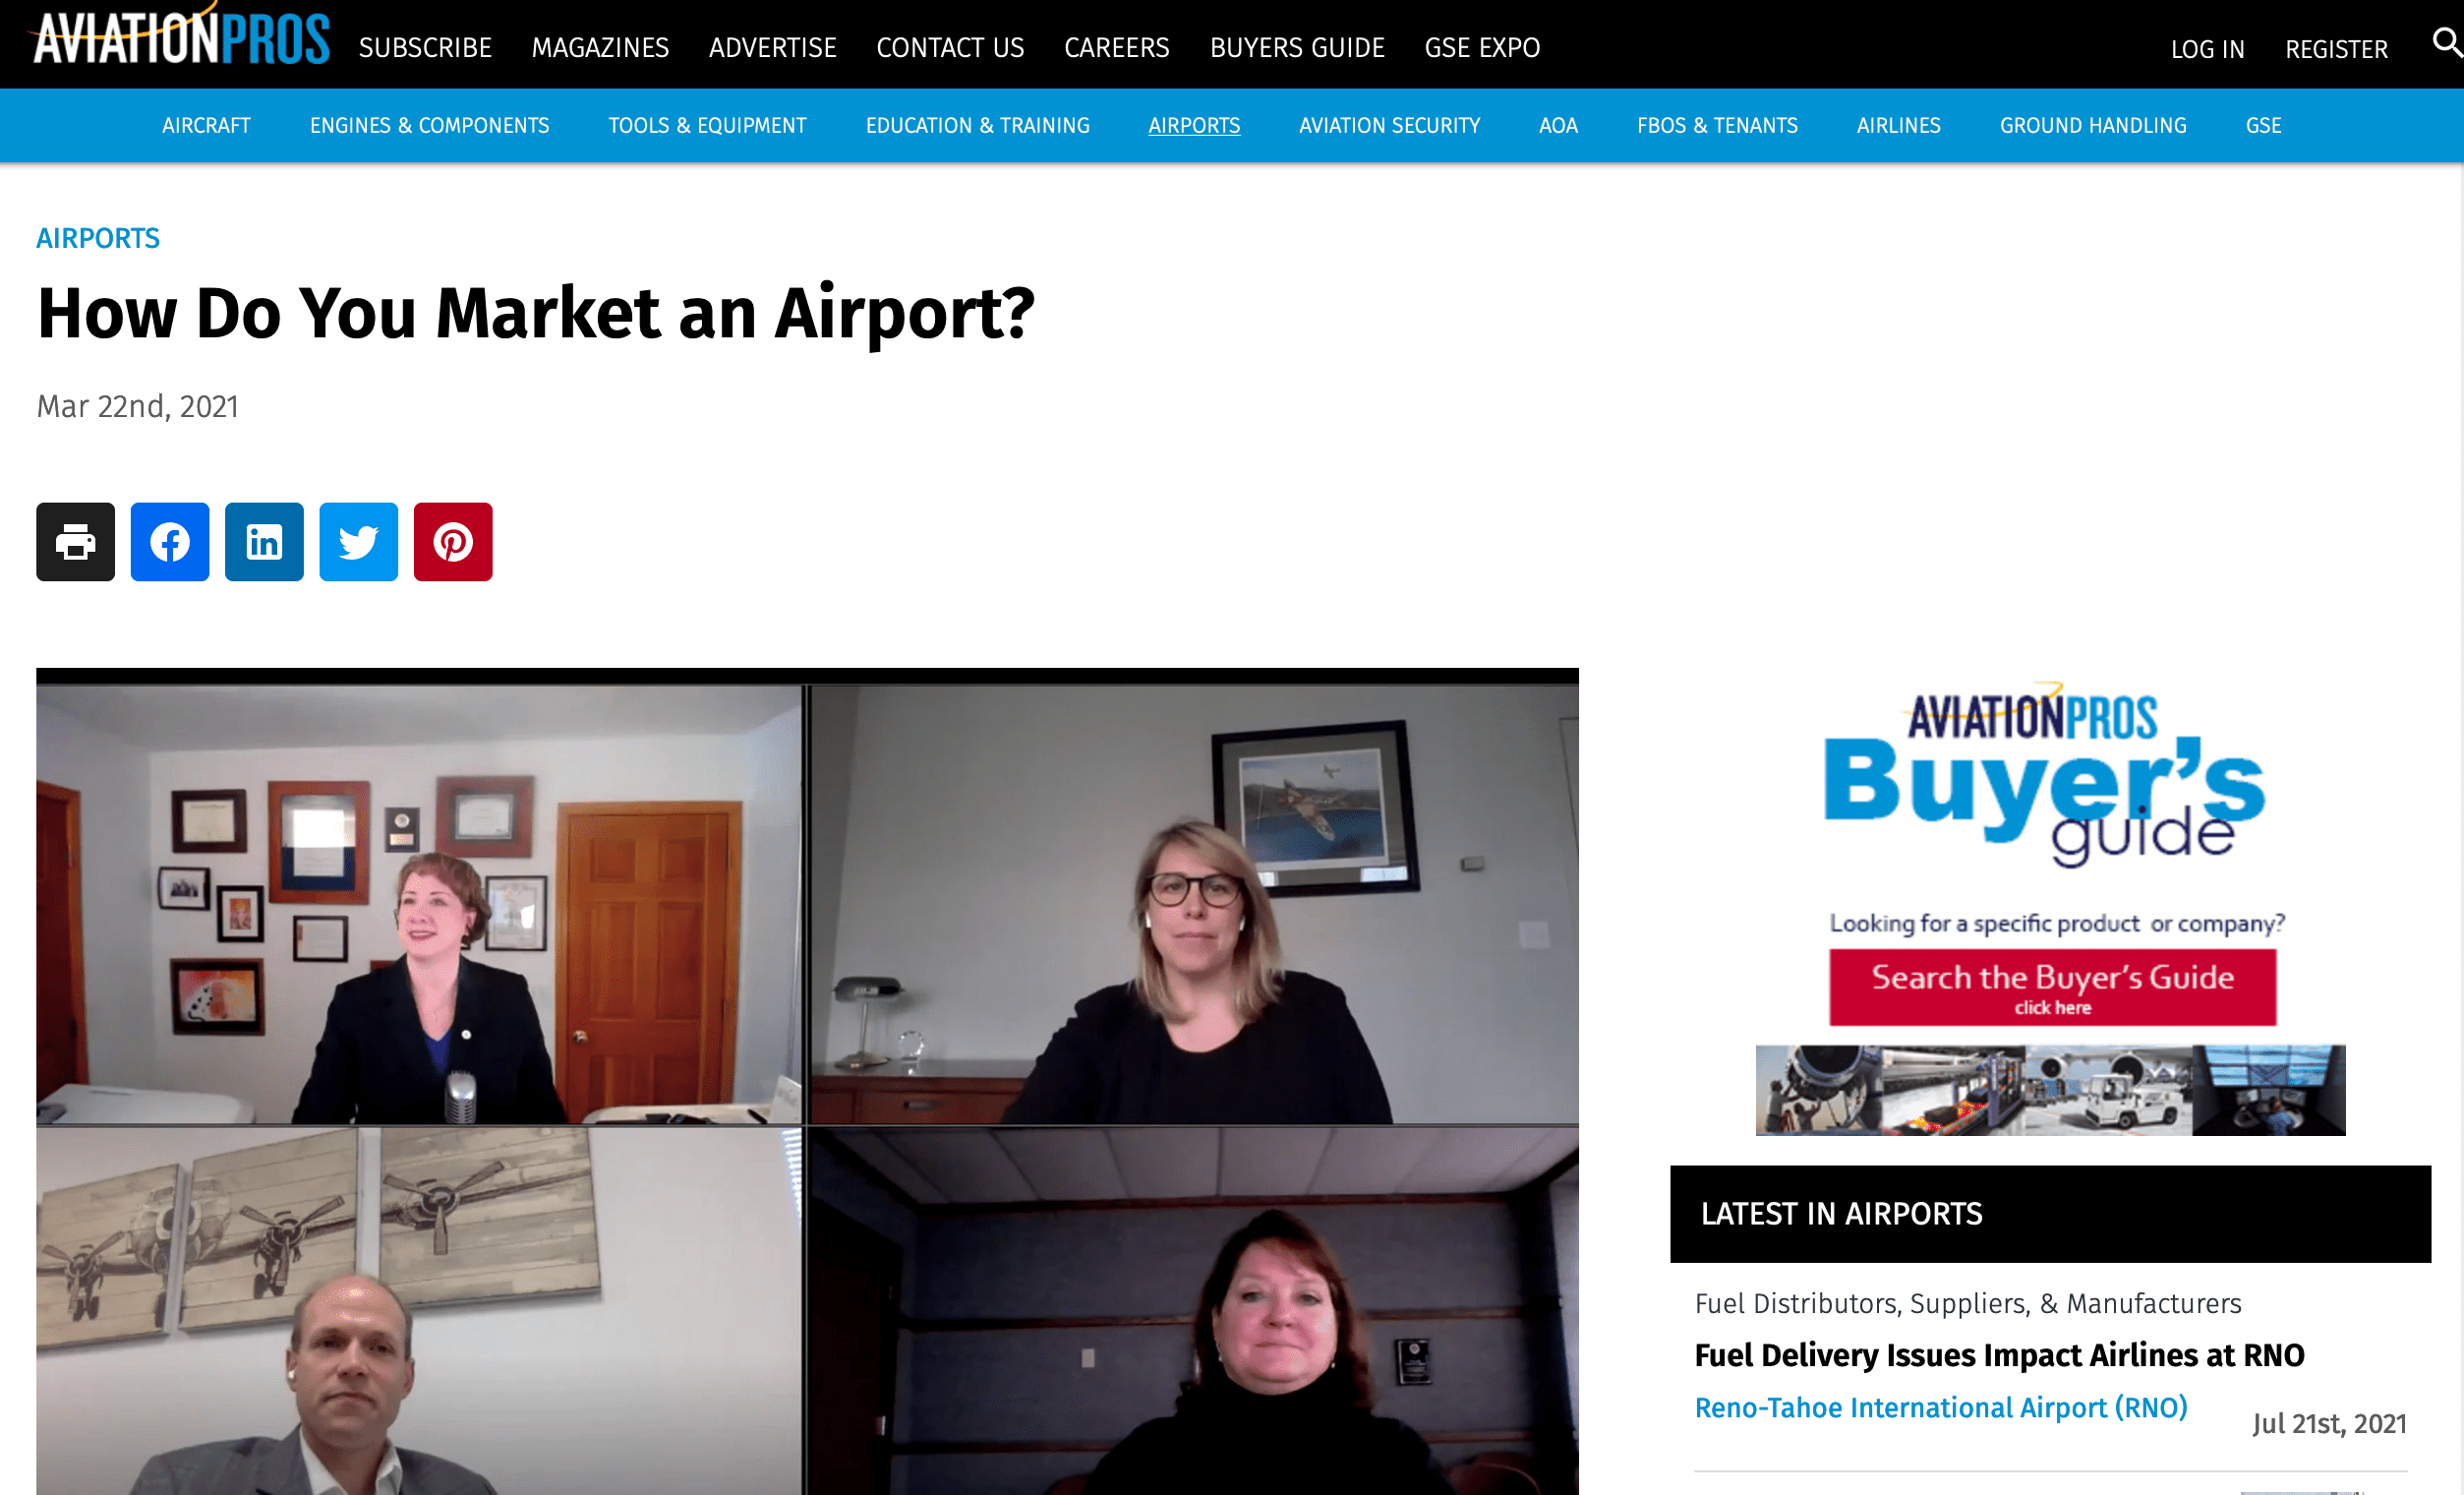 Aviation Pros - How to Market an Airport